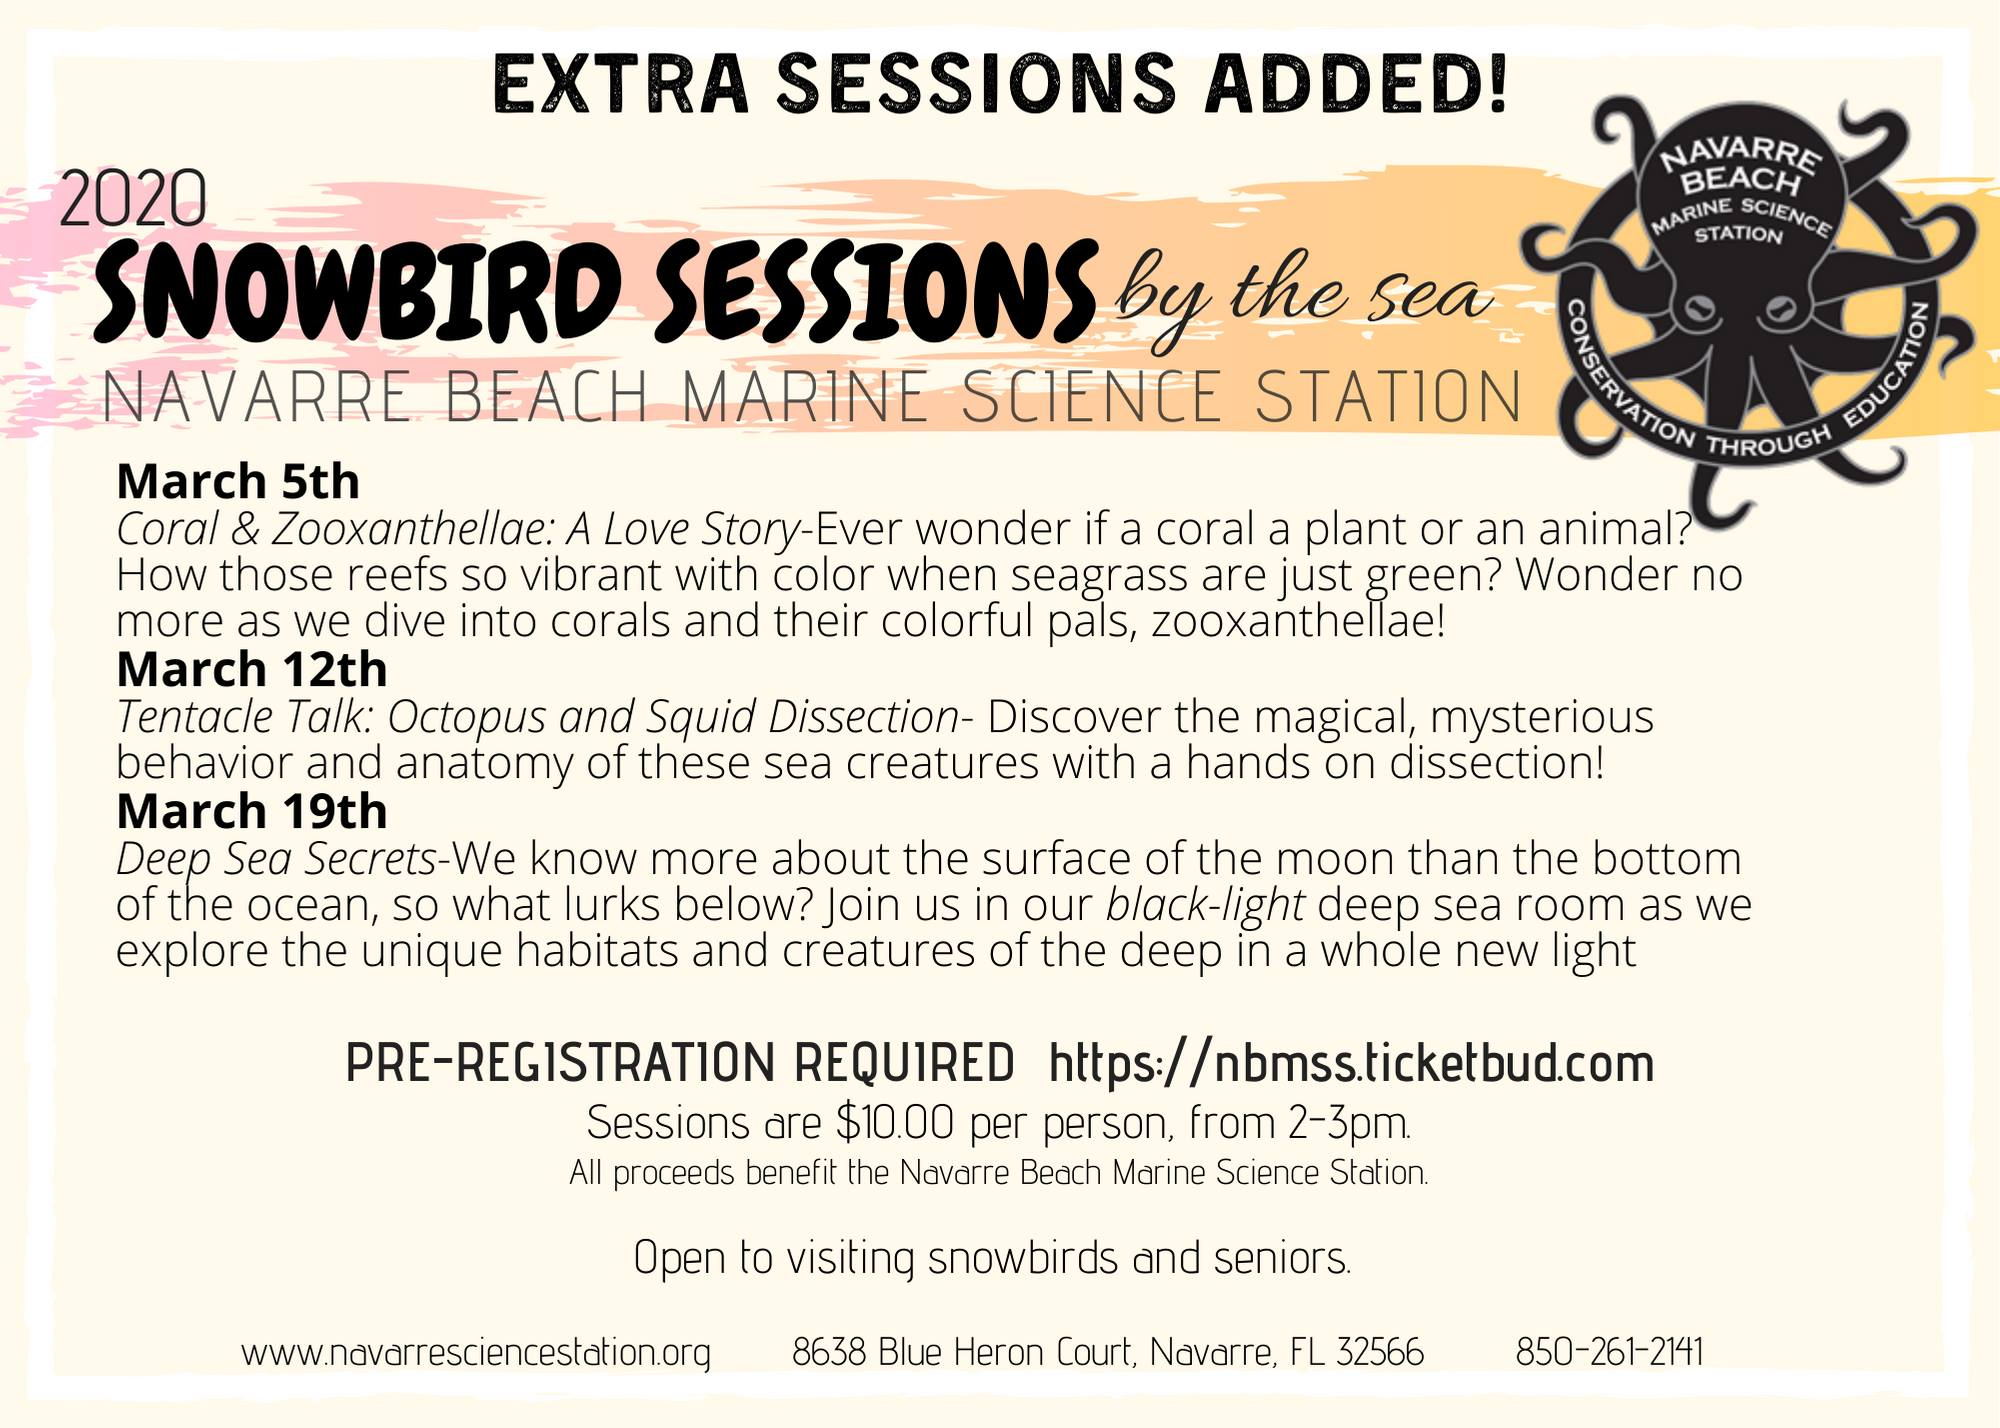 Snowbird Session flyer for extra sessions